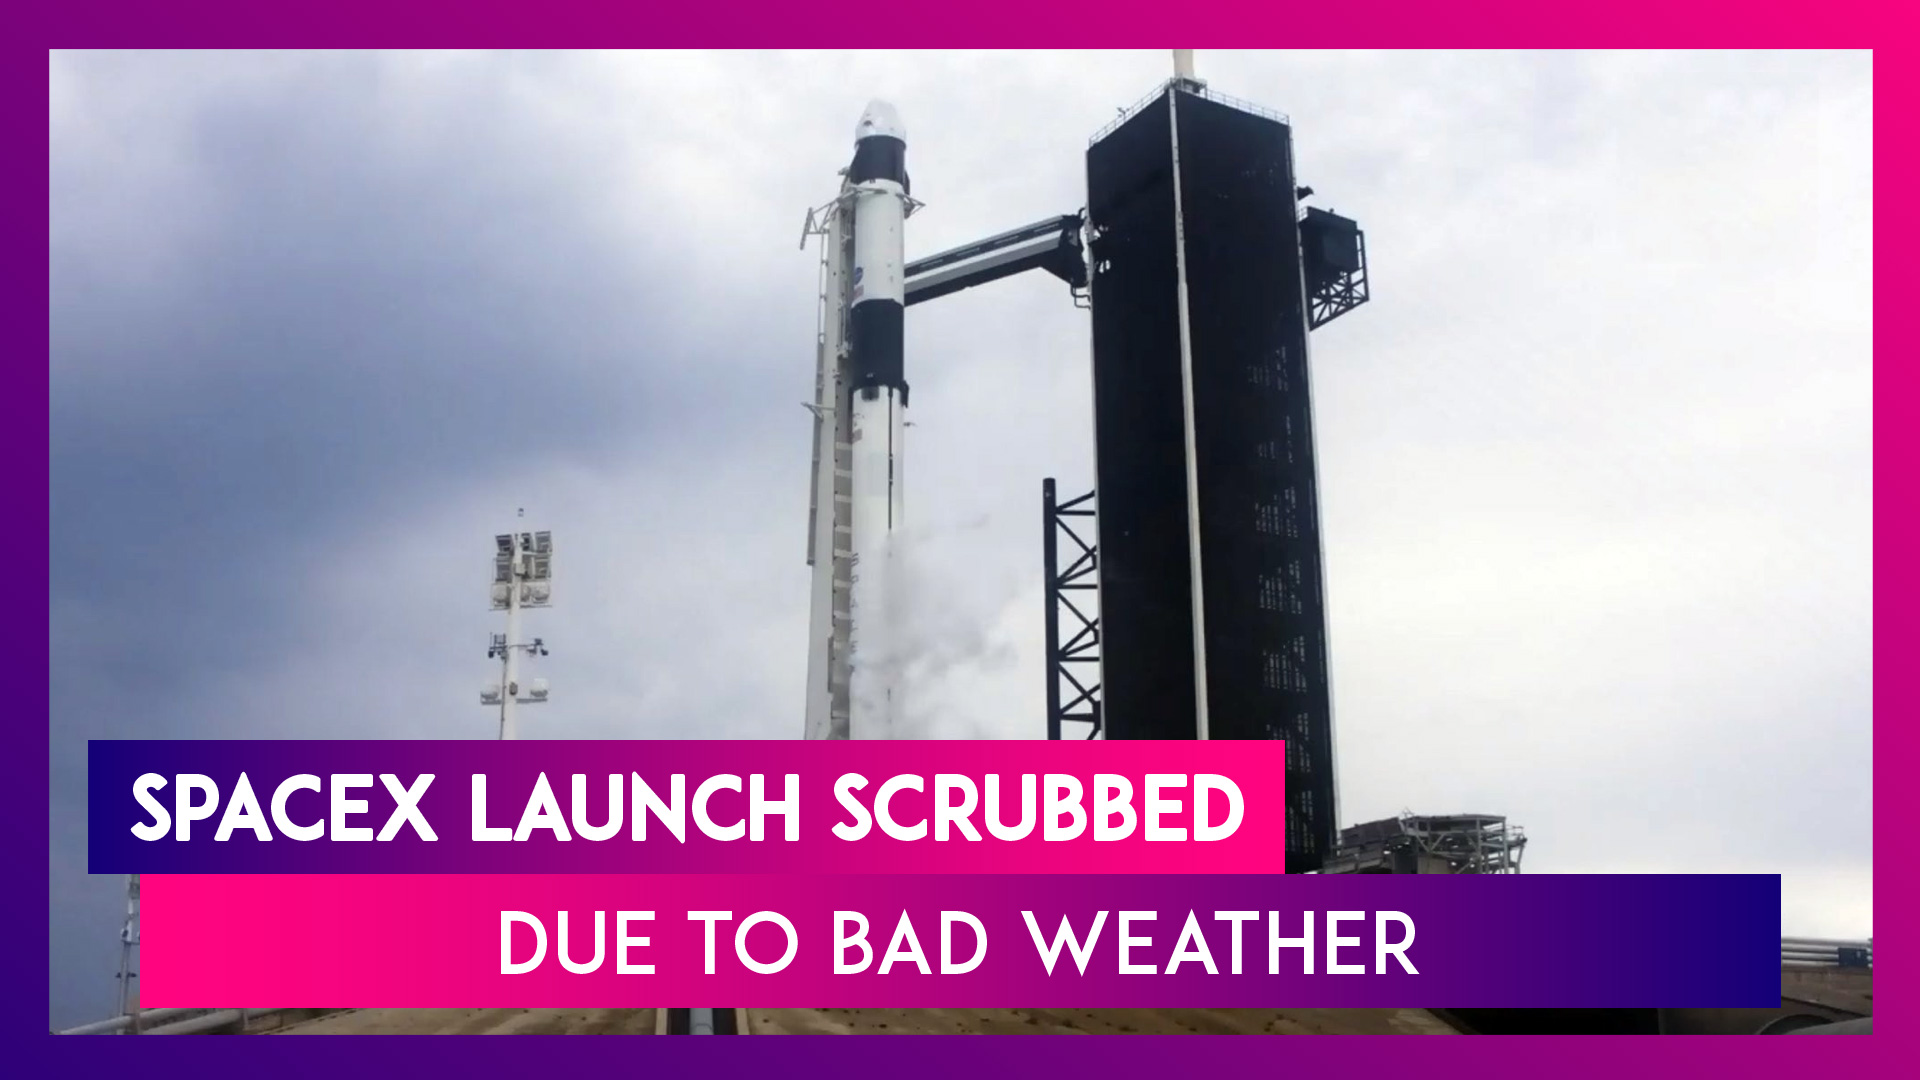 SpaceX's Crew Dragon Launch With NASA Astronauts Scrubbed Due To Bad Weather, Next Chance On May 30